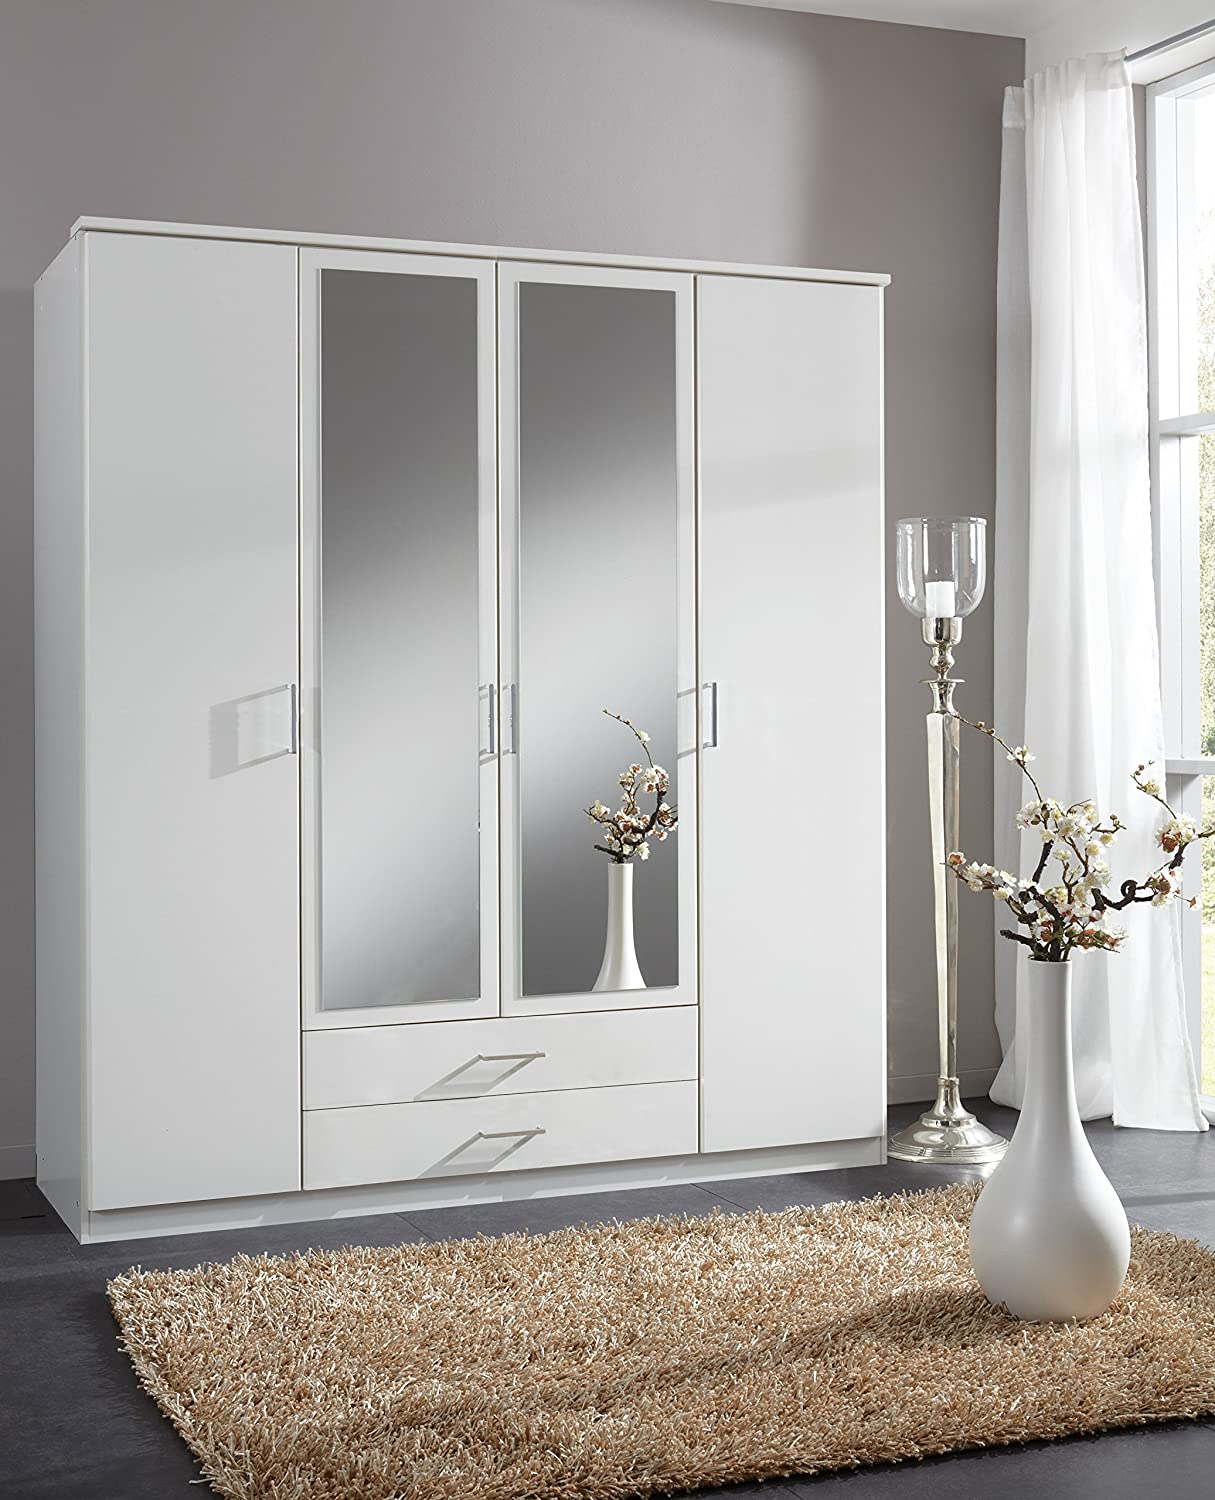 cherry door p armoire wardrobe for home cabinet storage htm office bedroom or living white room